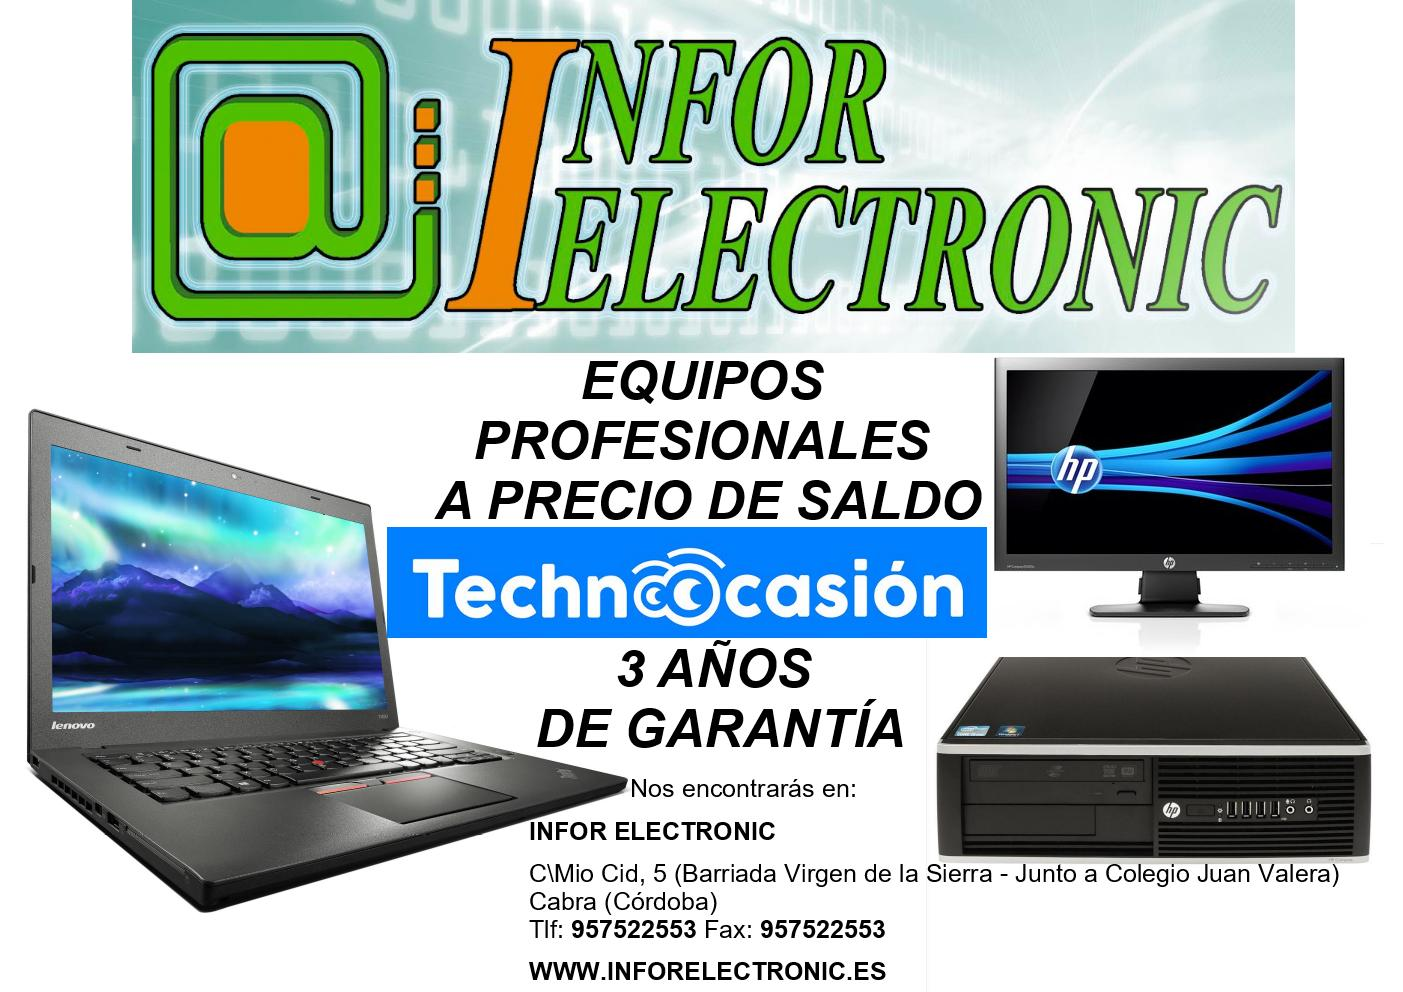 Infor Electronic